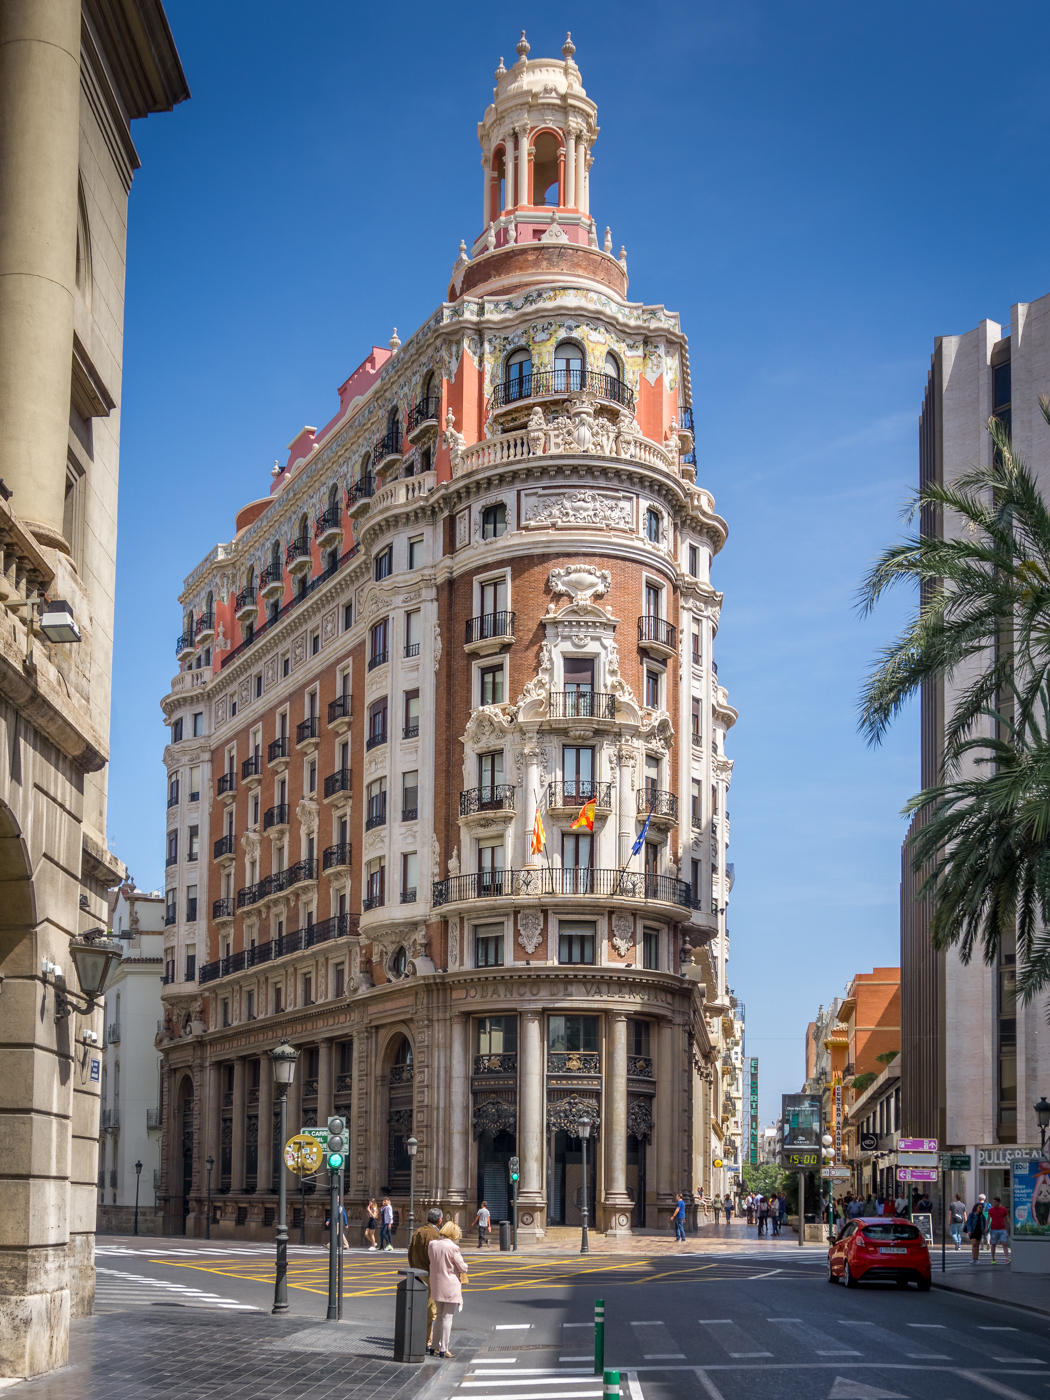 Bank of Valencia, Spain